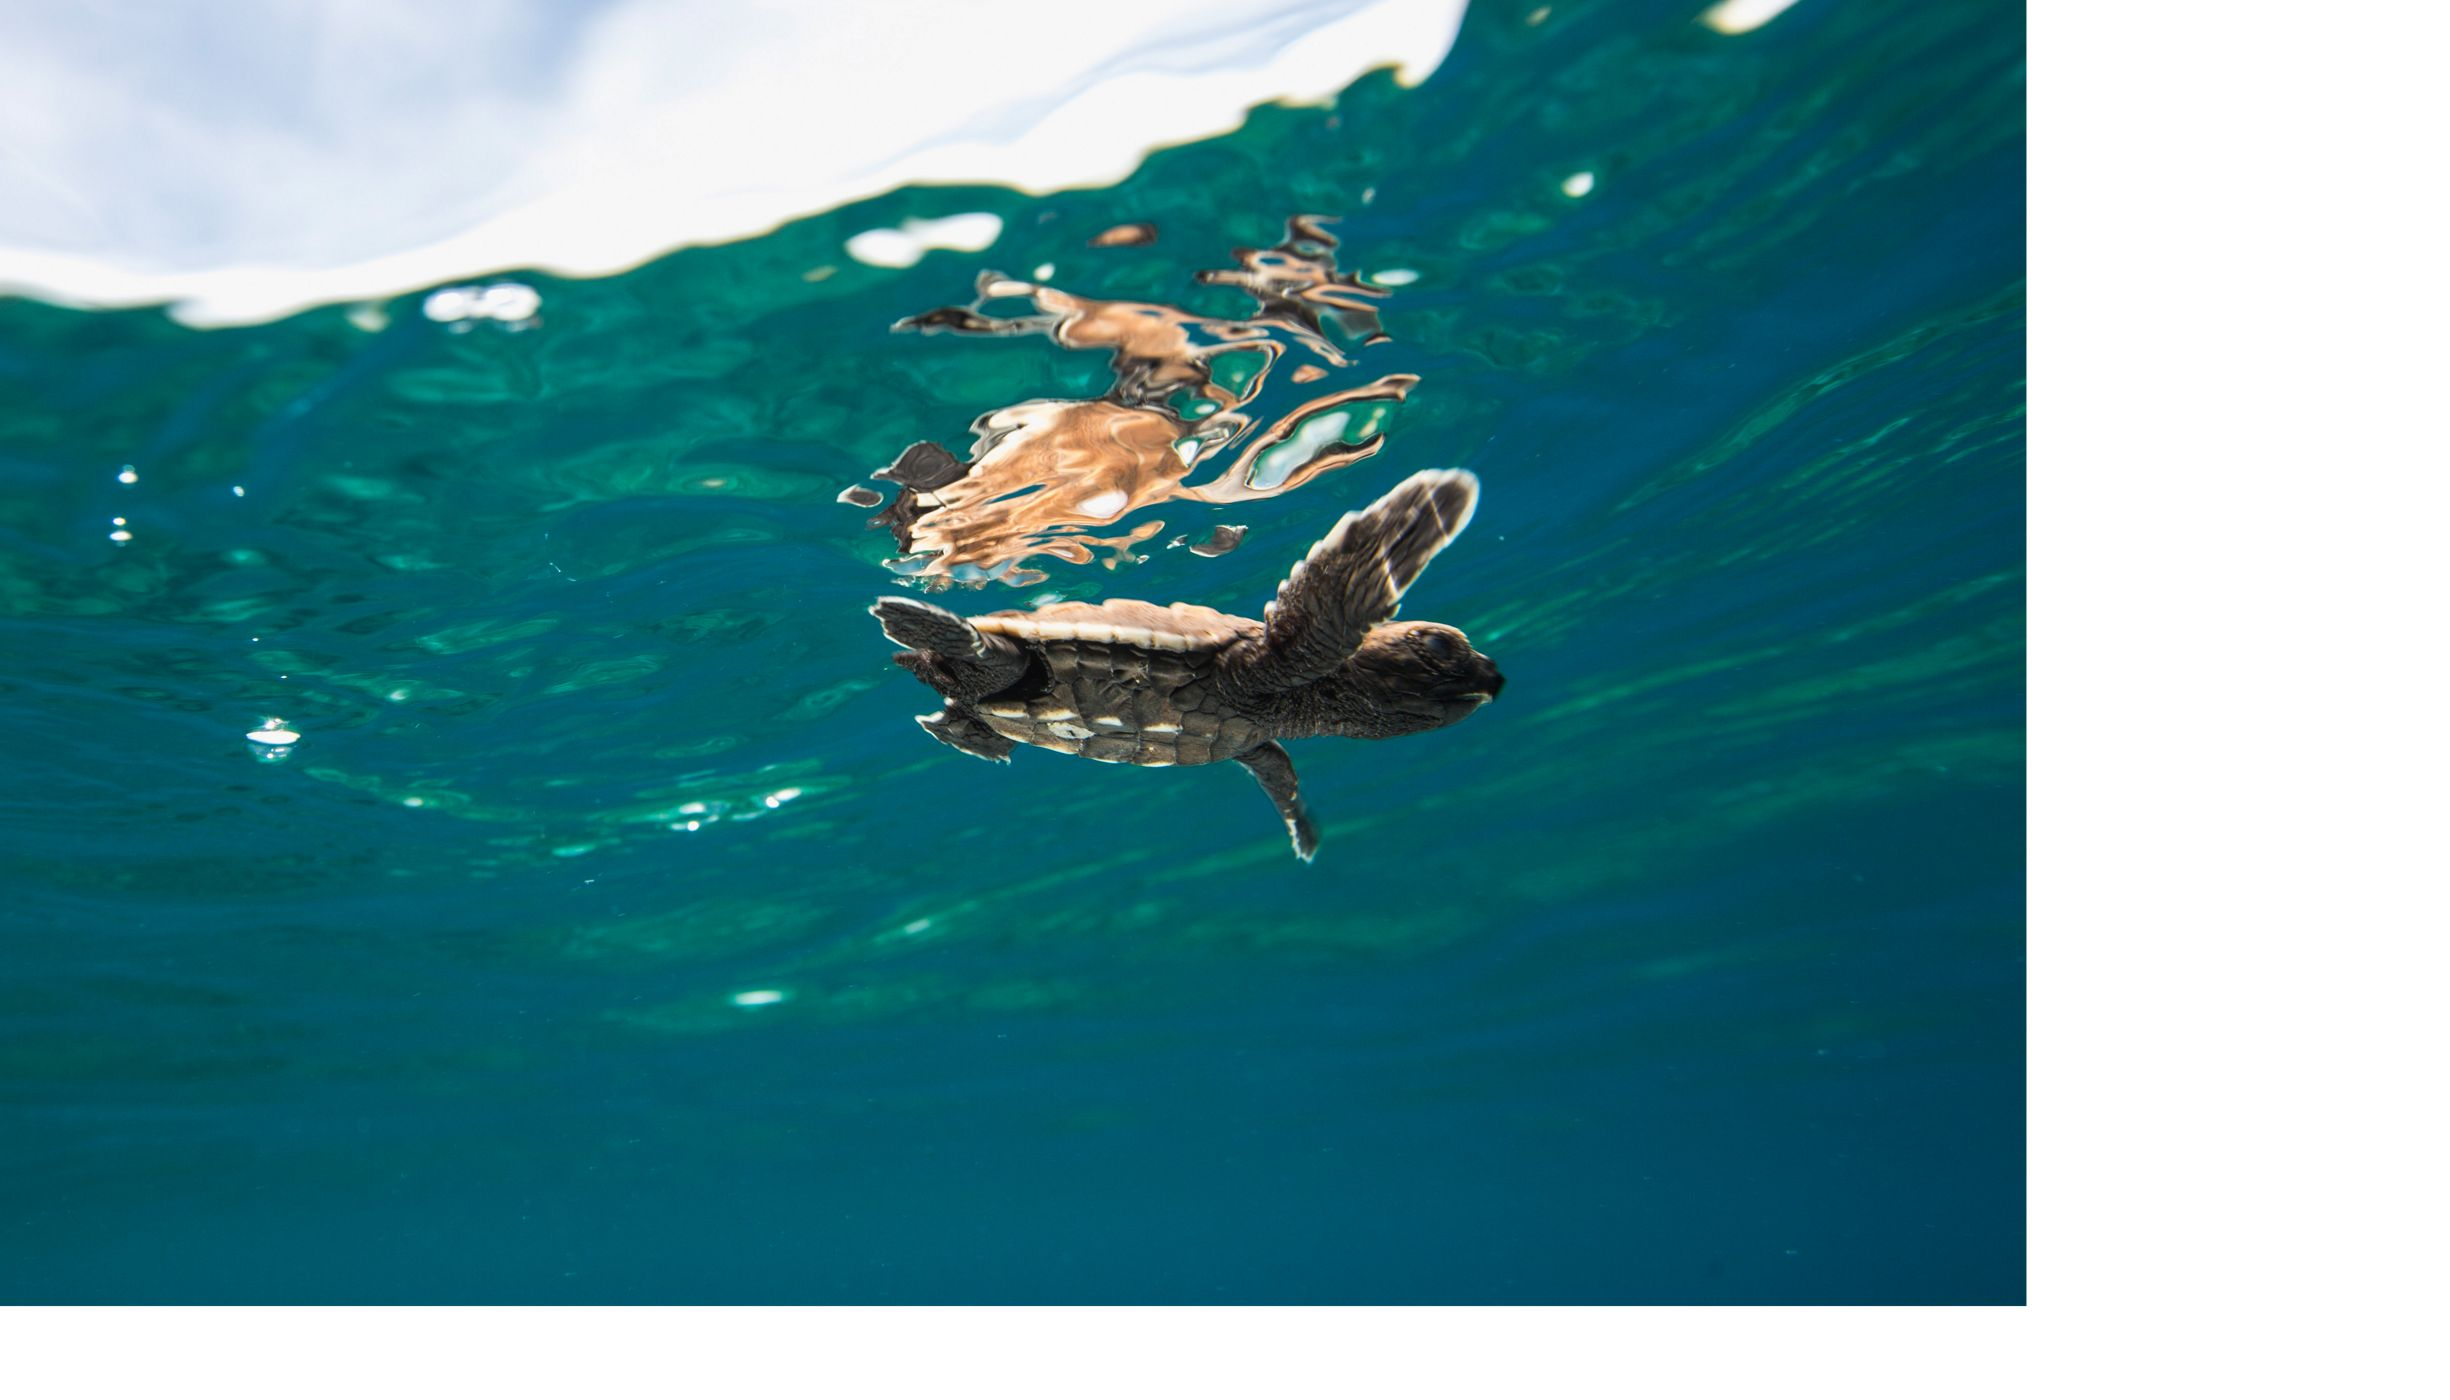 A newly hatched baby turtle makes its way into the ocean, Solomon Islands.